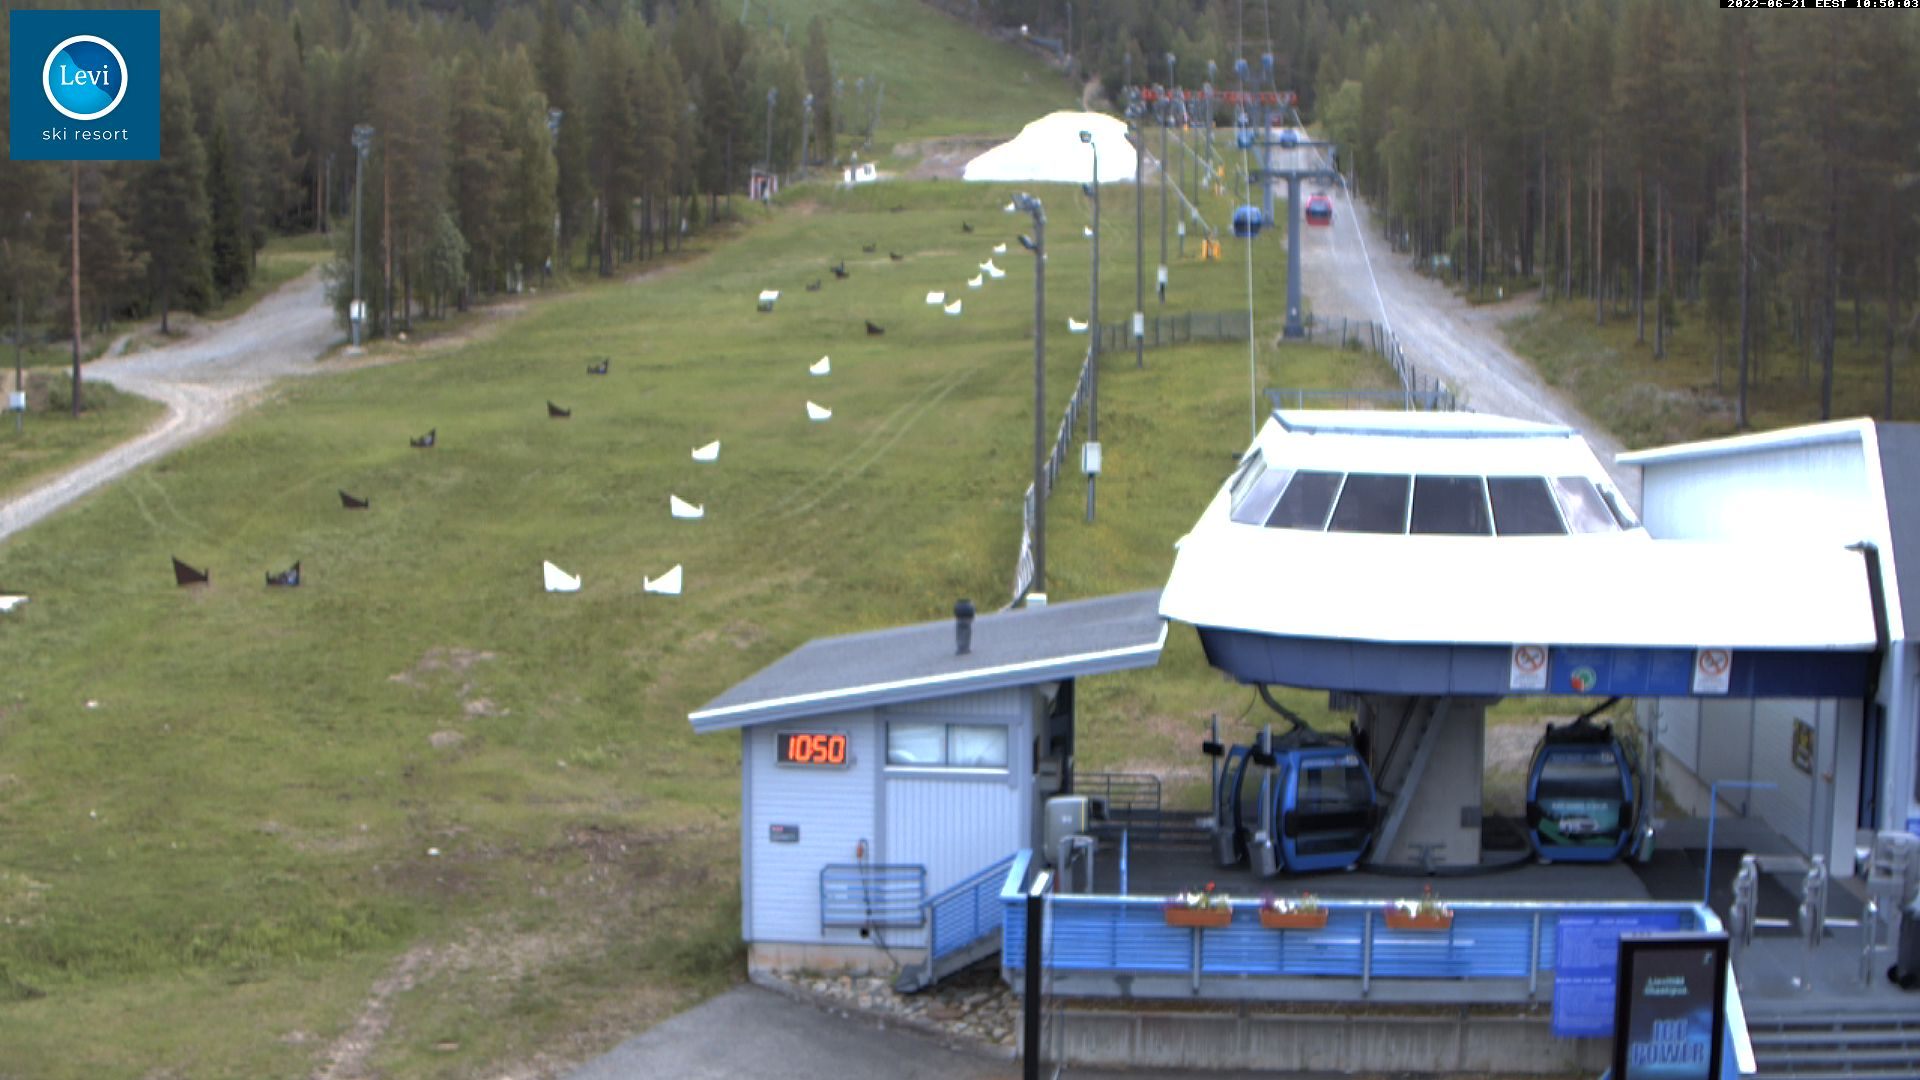 Levi Gondolli 2000 station webcam